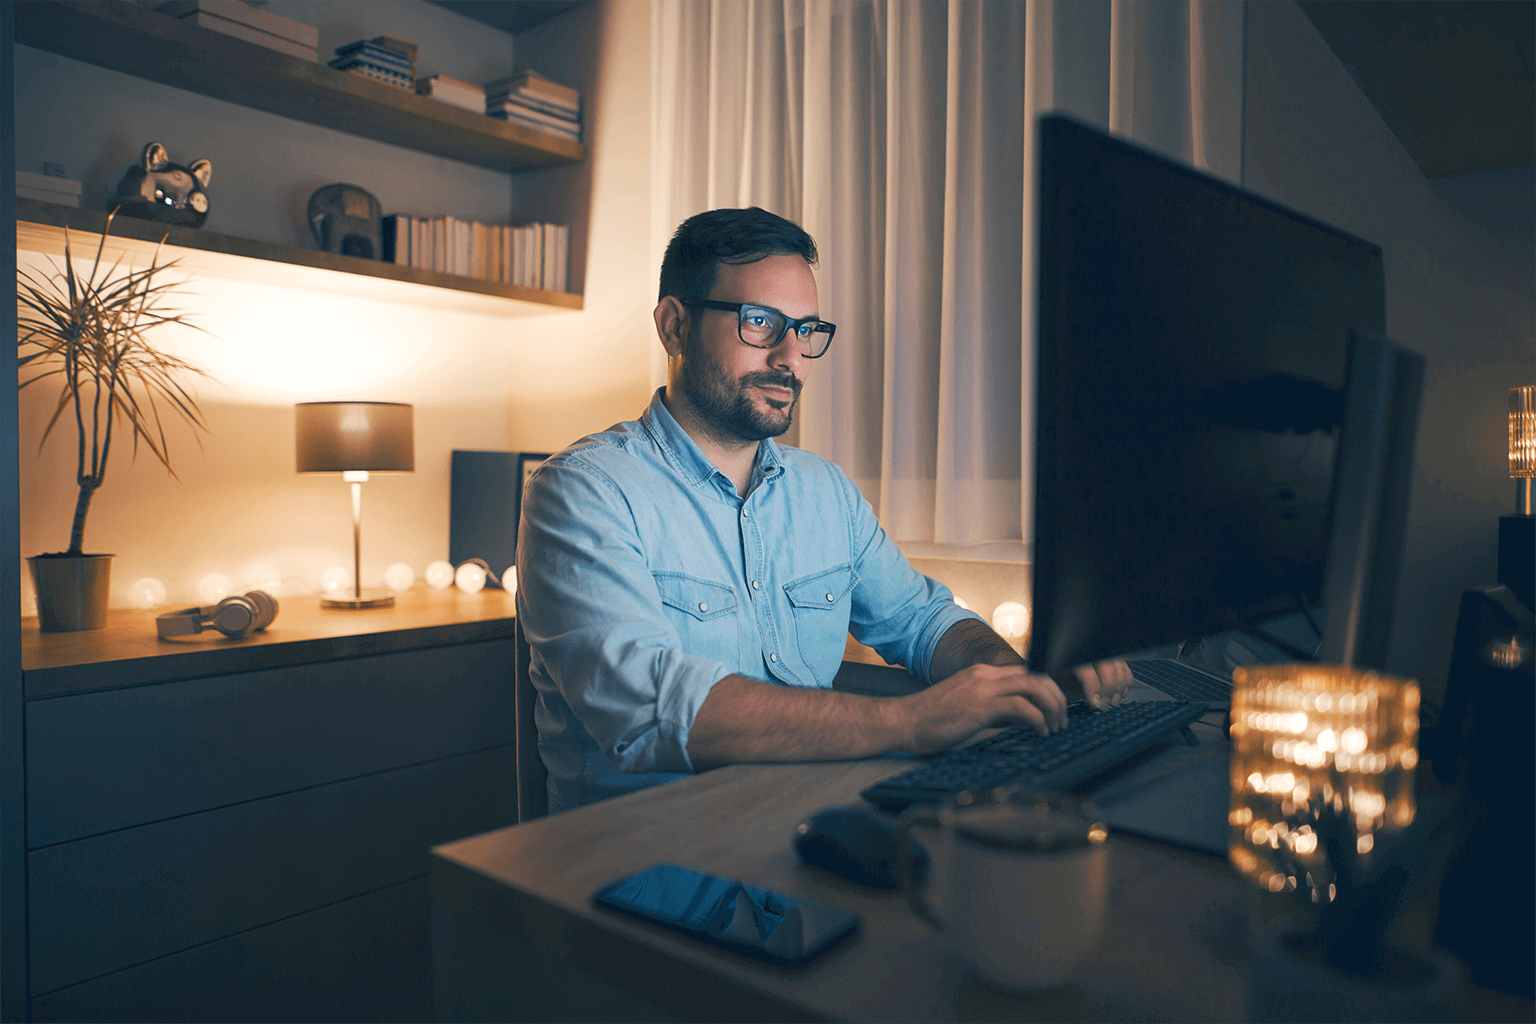 A man sits at home in front of his computer with lights on